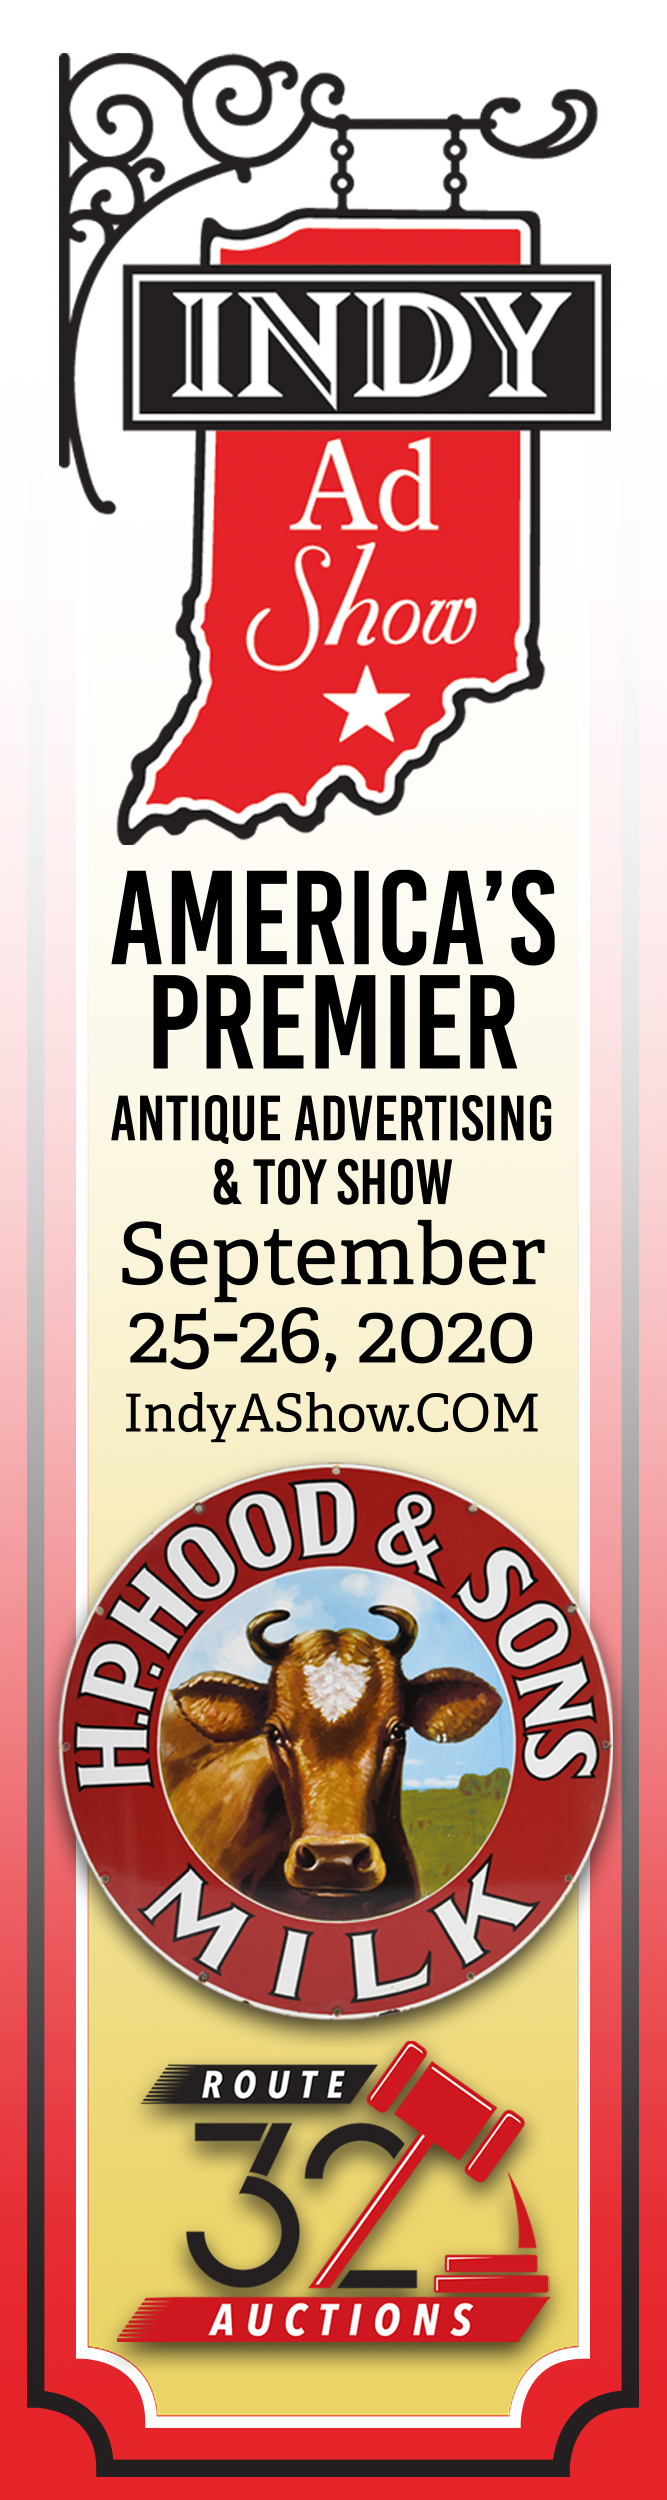 Indy Antique Show